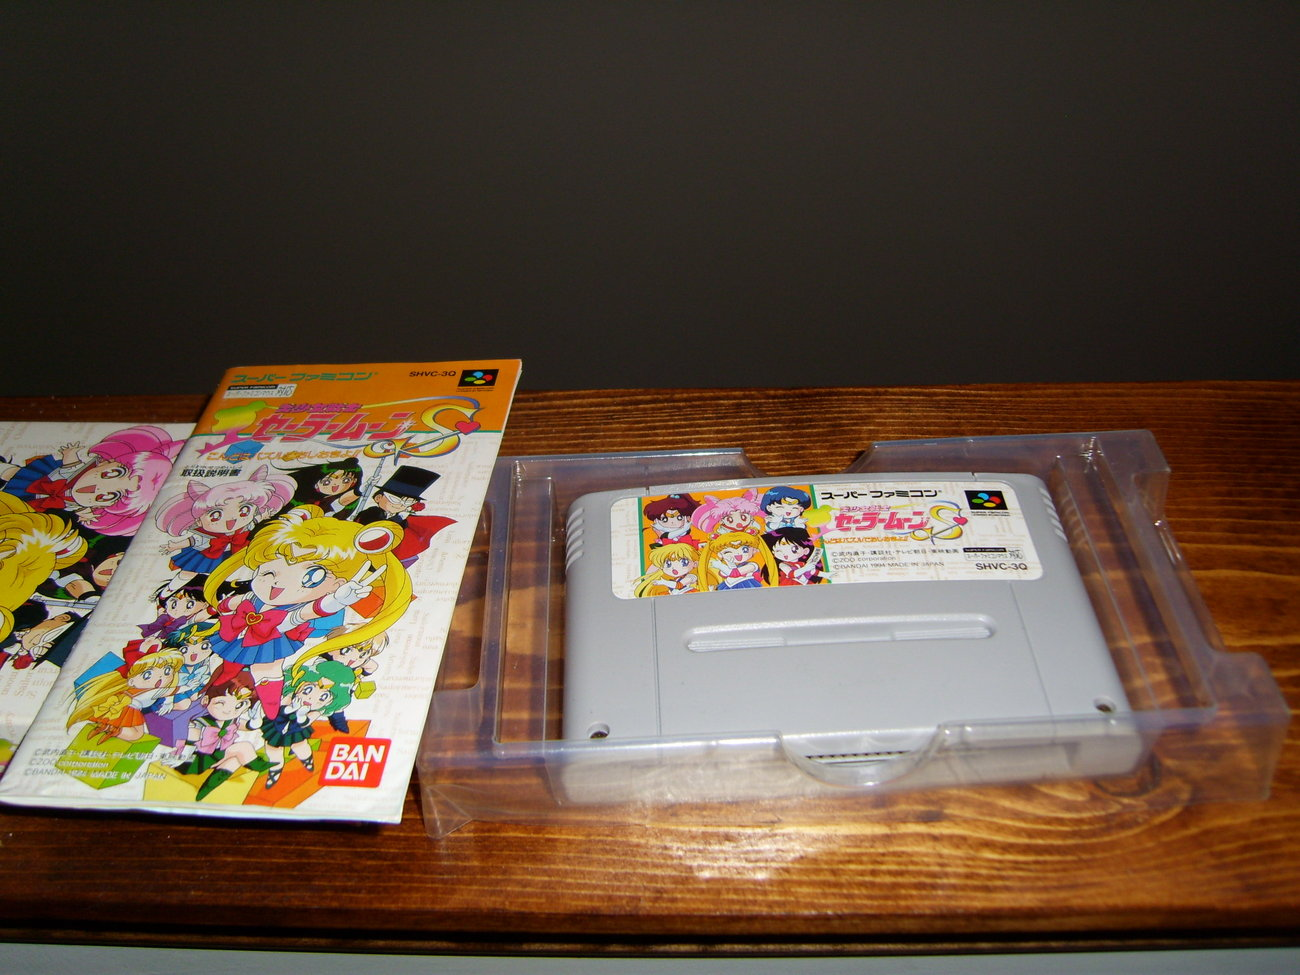 Sailor Moon S 20 game Super Famicon complete JAPAN only